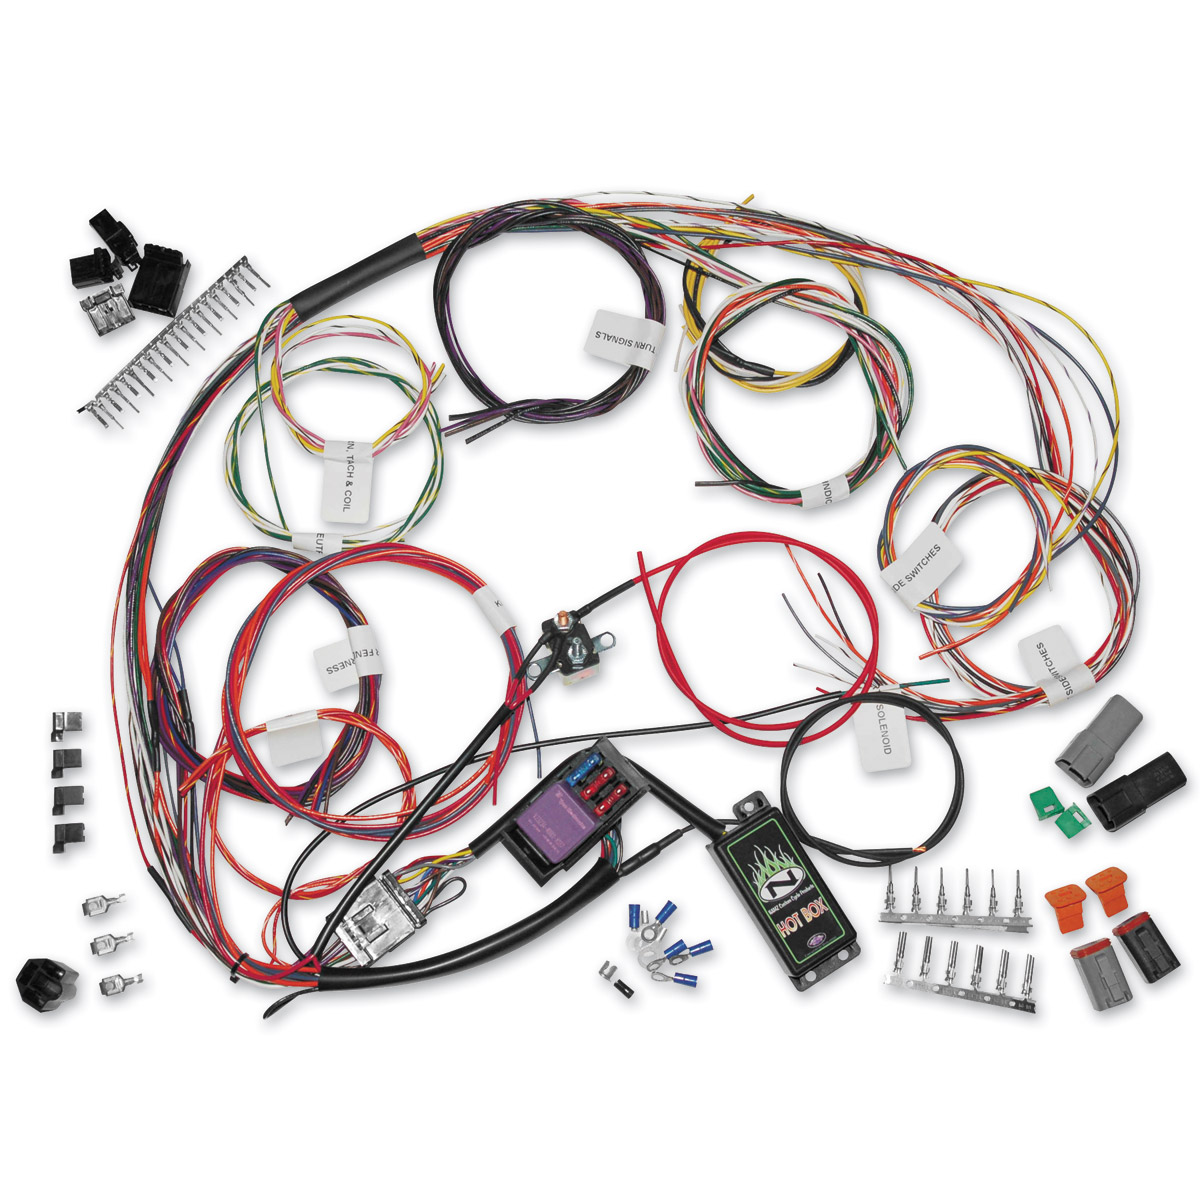 745 072_A harley davidson sportster wiring harness kits j&p cycles cycle visions custom wire harness at bakdesigns.co